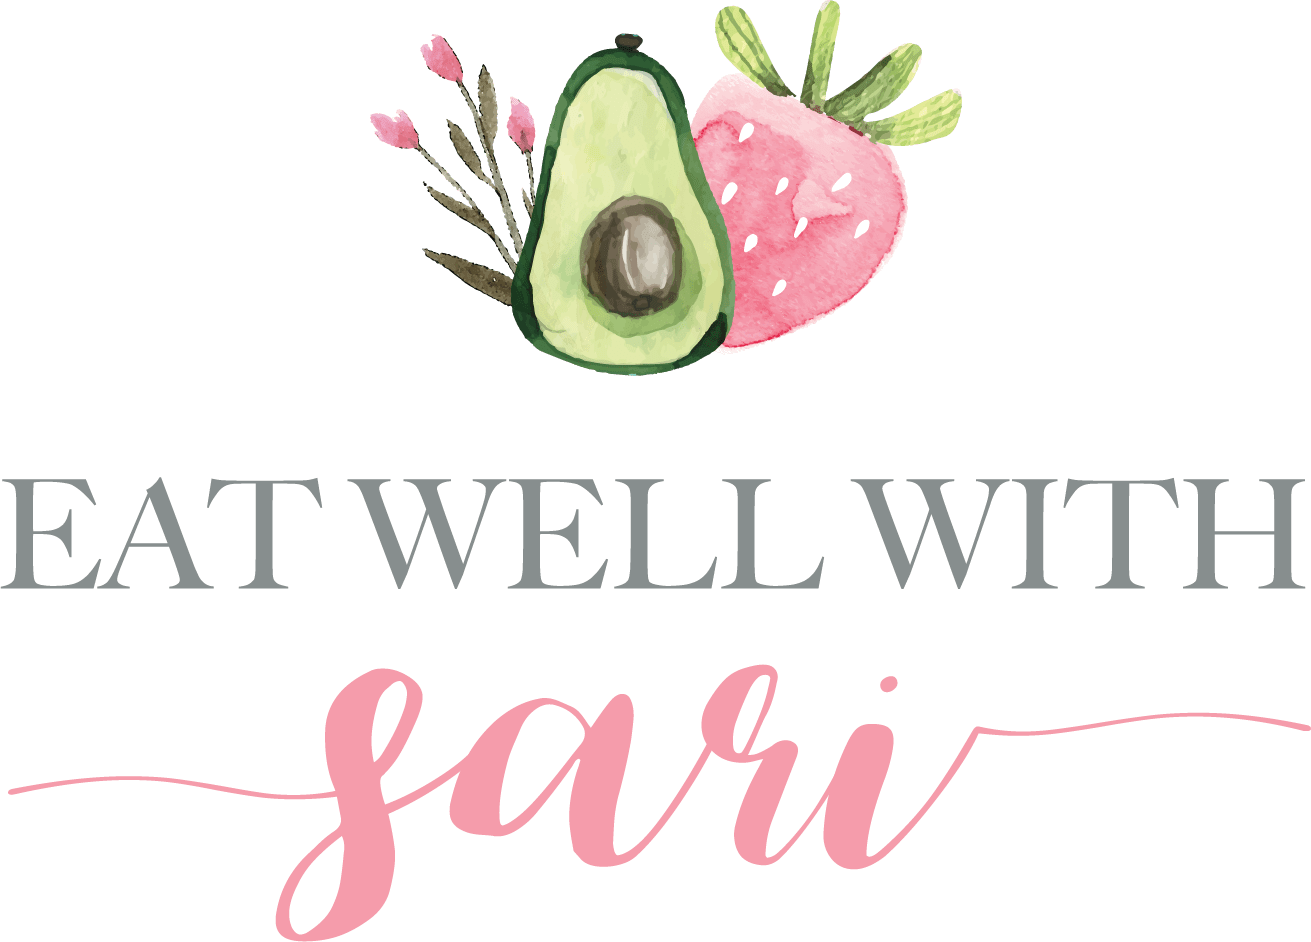 Eat Well With Sari